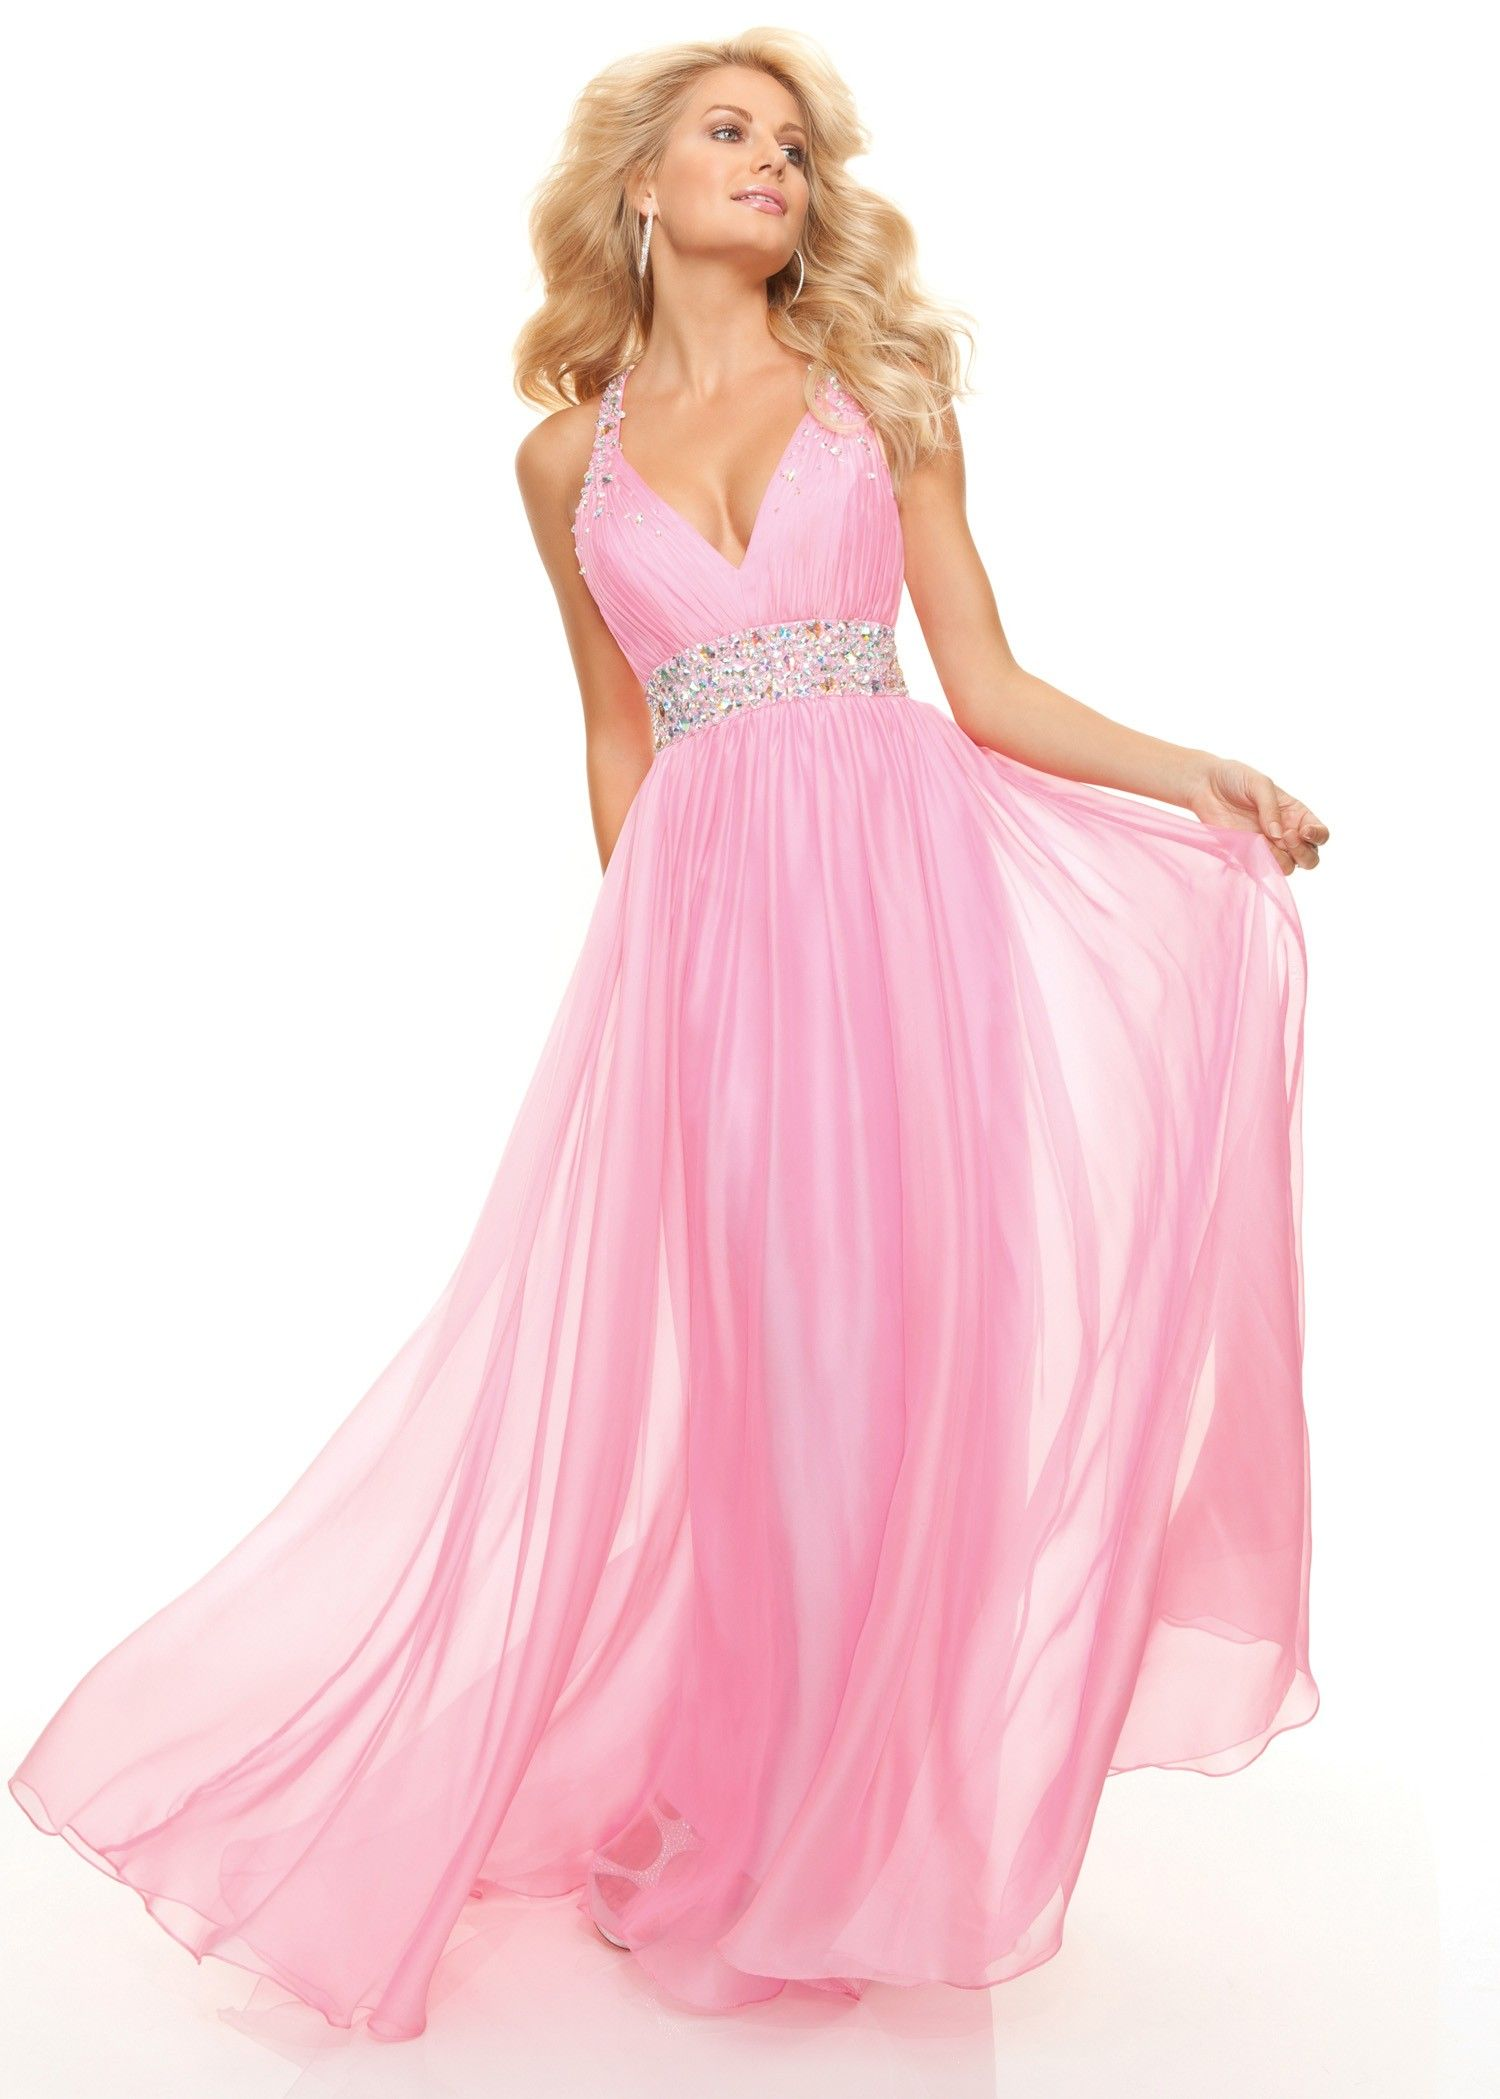 Paparazzi by Mori Lee 93043 Pink Evening Gown   Prom   Pinterest ...